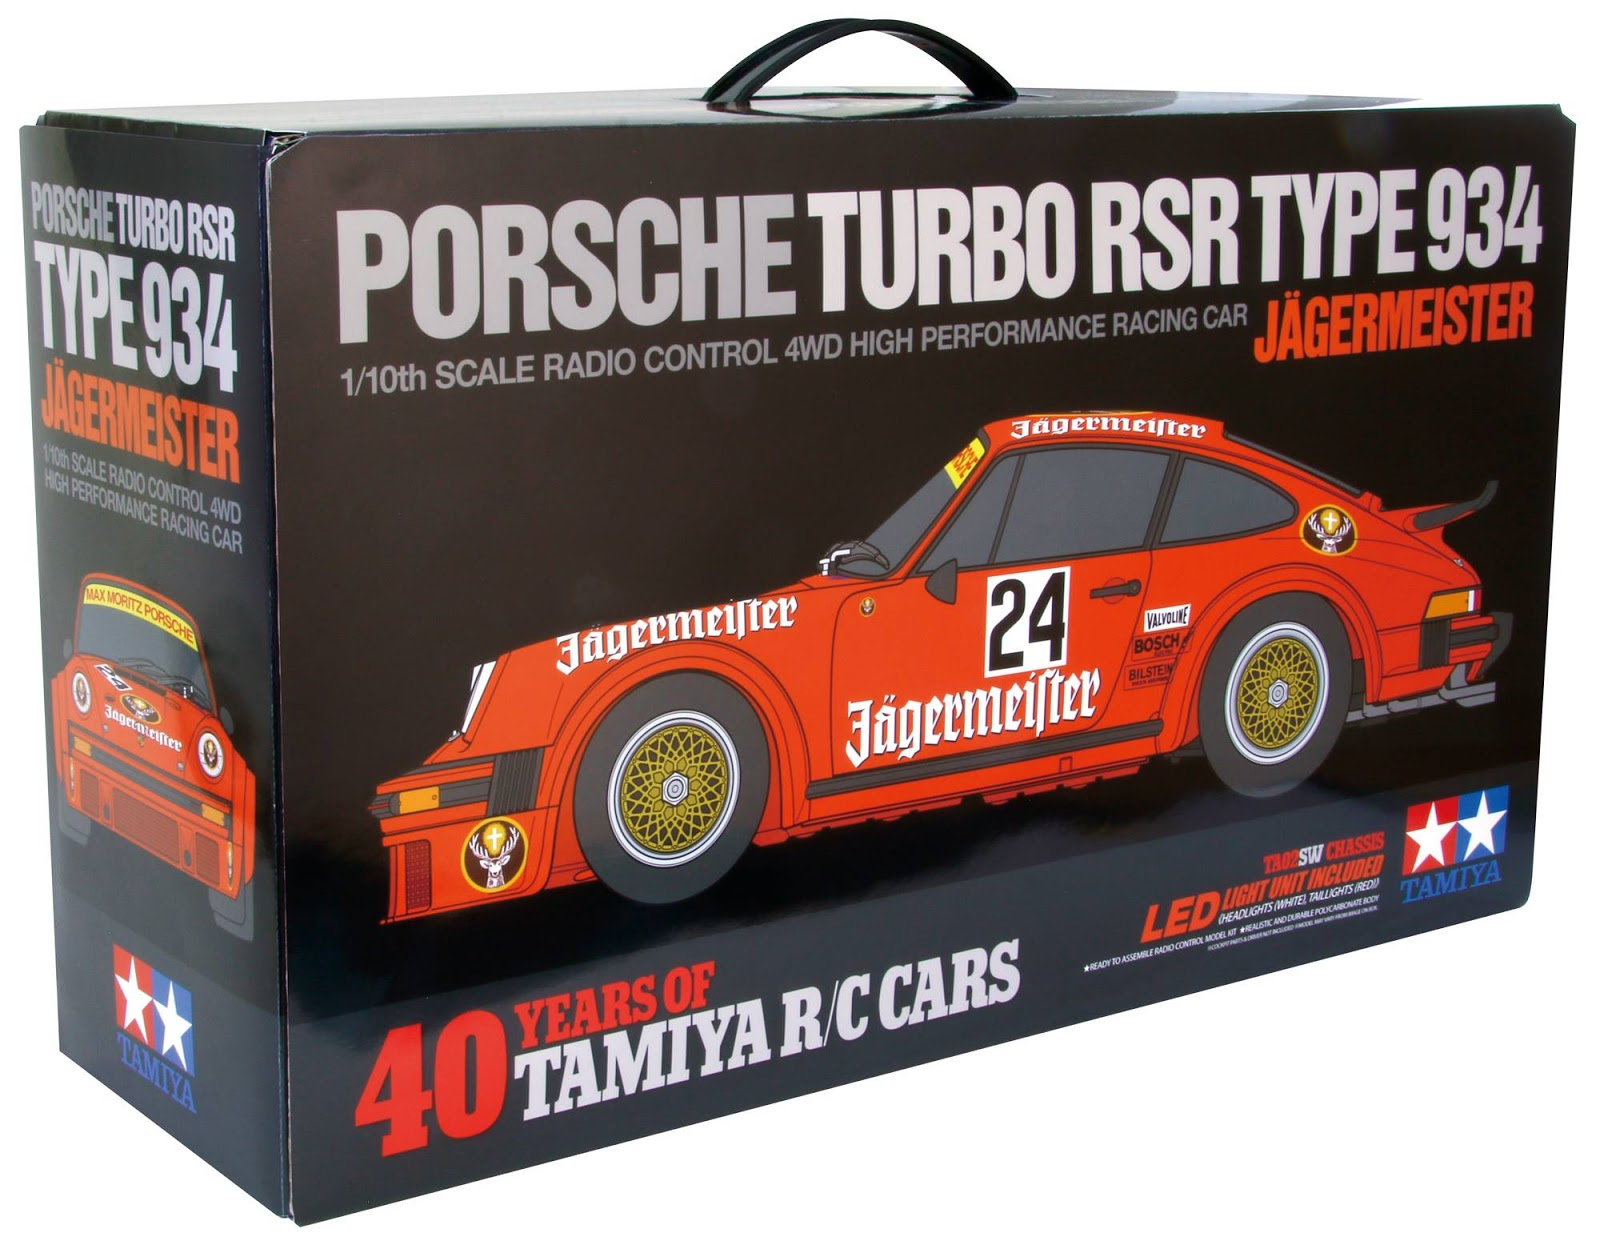 ger rc car with 79832 84431 110 Rc Porsche 934 J C3 A4germeister Ta02 Sw Limited Edition 40 Years on 2018 Audi S5 Coup together with TRF417V5 ViktorWilck CharityRace201212 together with Konstgjord Gron Gras Plast Grasmatta Tradgard Dekoration besides Tamiya 84431 Ta02sw Porsche Rsr Type 934 Jagermeister P 90073760 as well F1 Gp Germania Vettel A Caccia Del Gran Premio Perfetto Dopo La Strepitosa Pole Di Ieri Video.